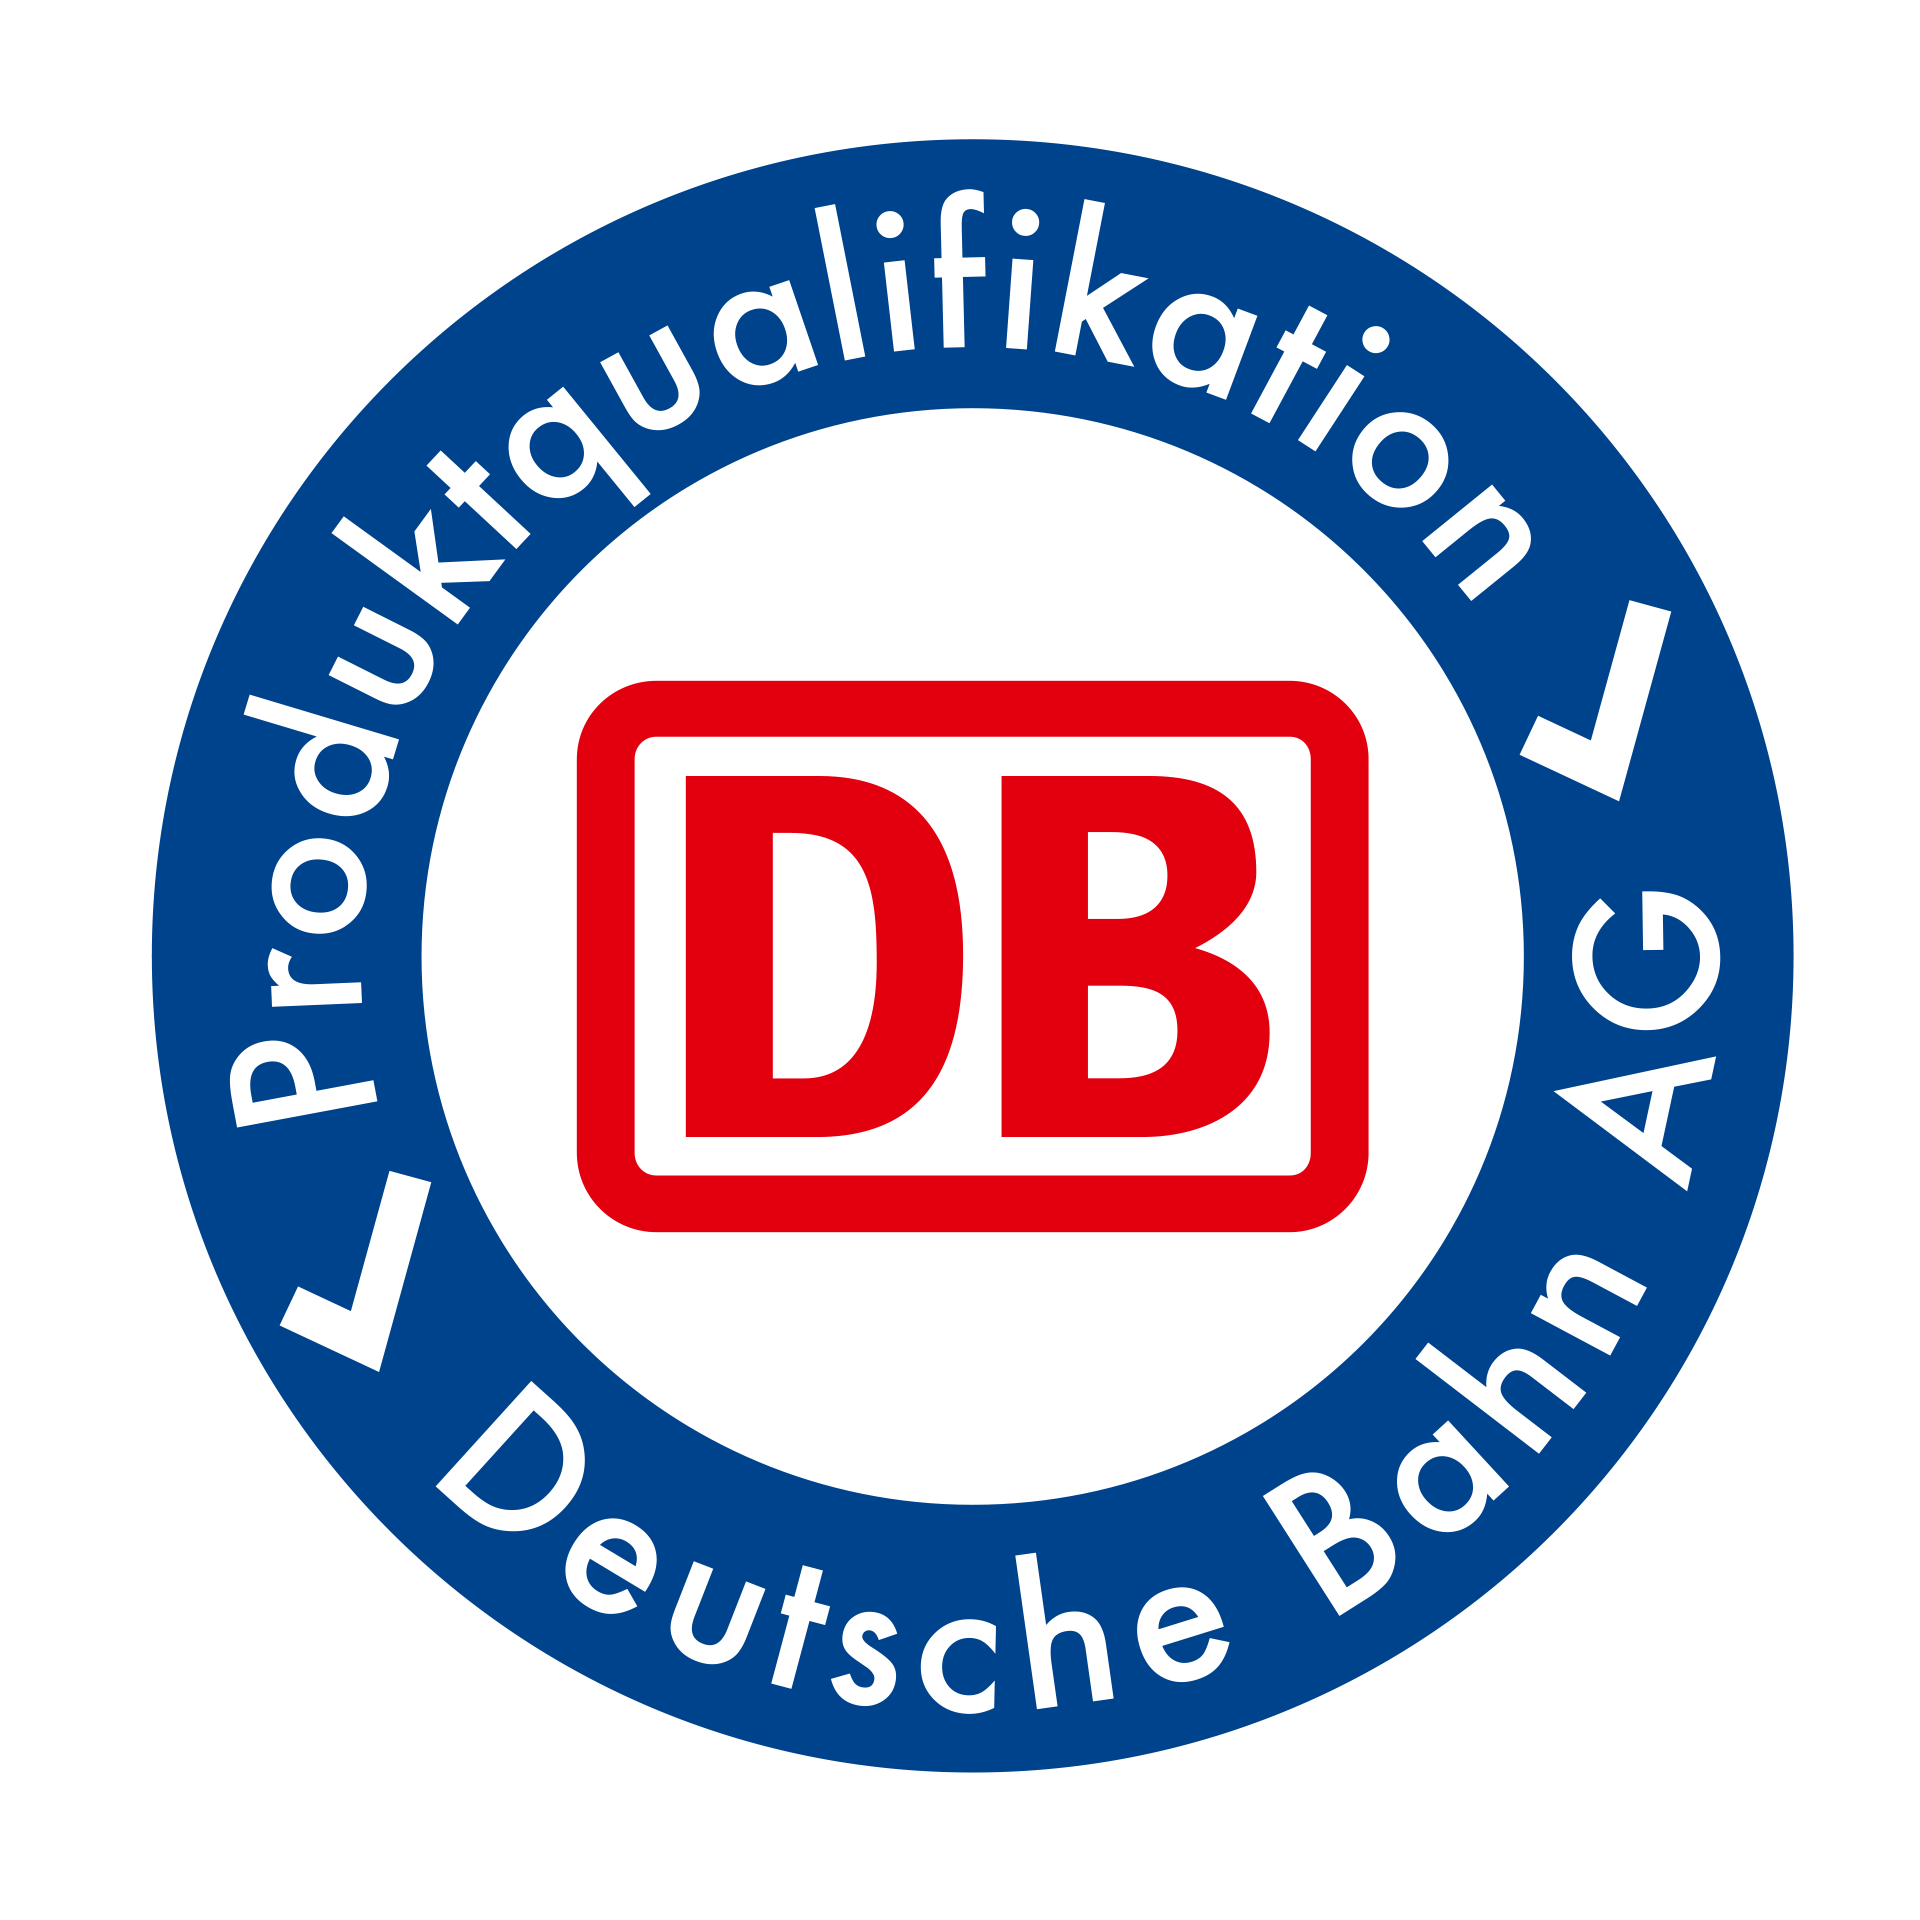 Produktqualifikation Deutsche Bahn AG